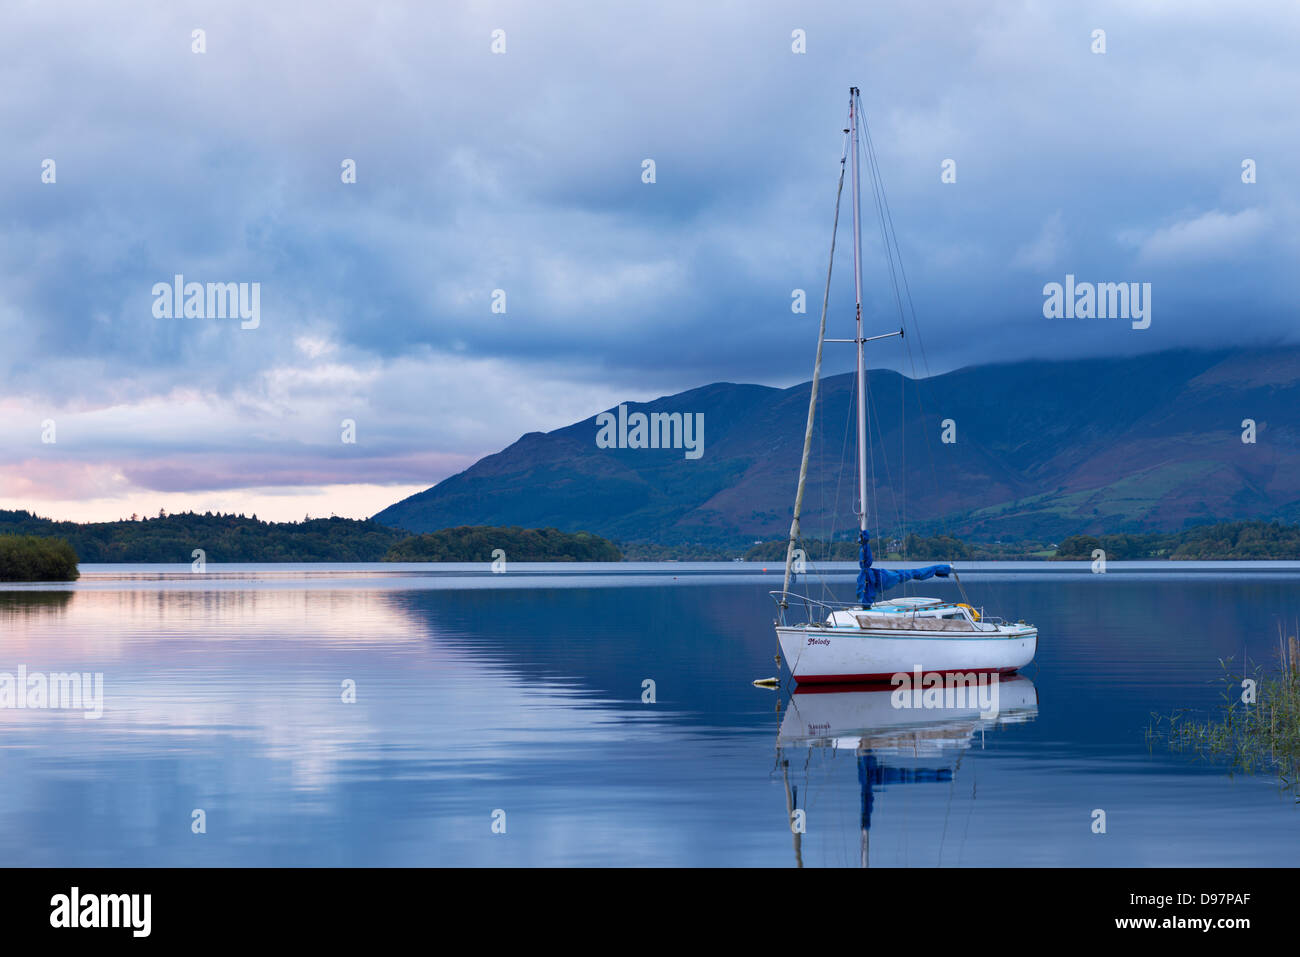 Yacht anchored on Derwent Water at twilight, Lake District, Cumbria, England. Autumn (October) 2012. - Stock Image